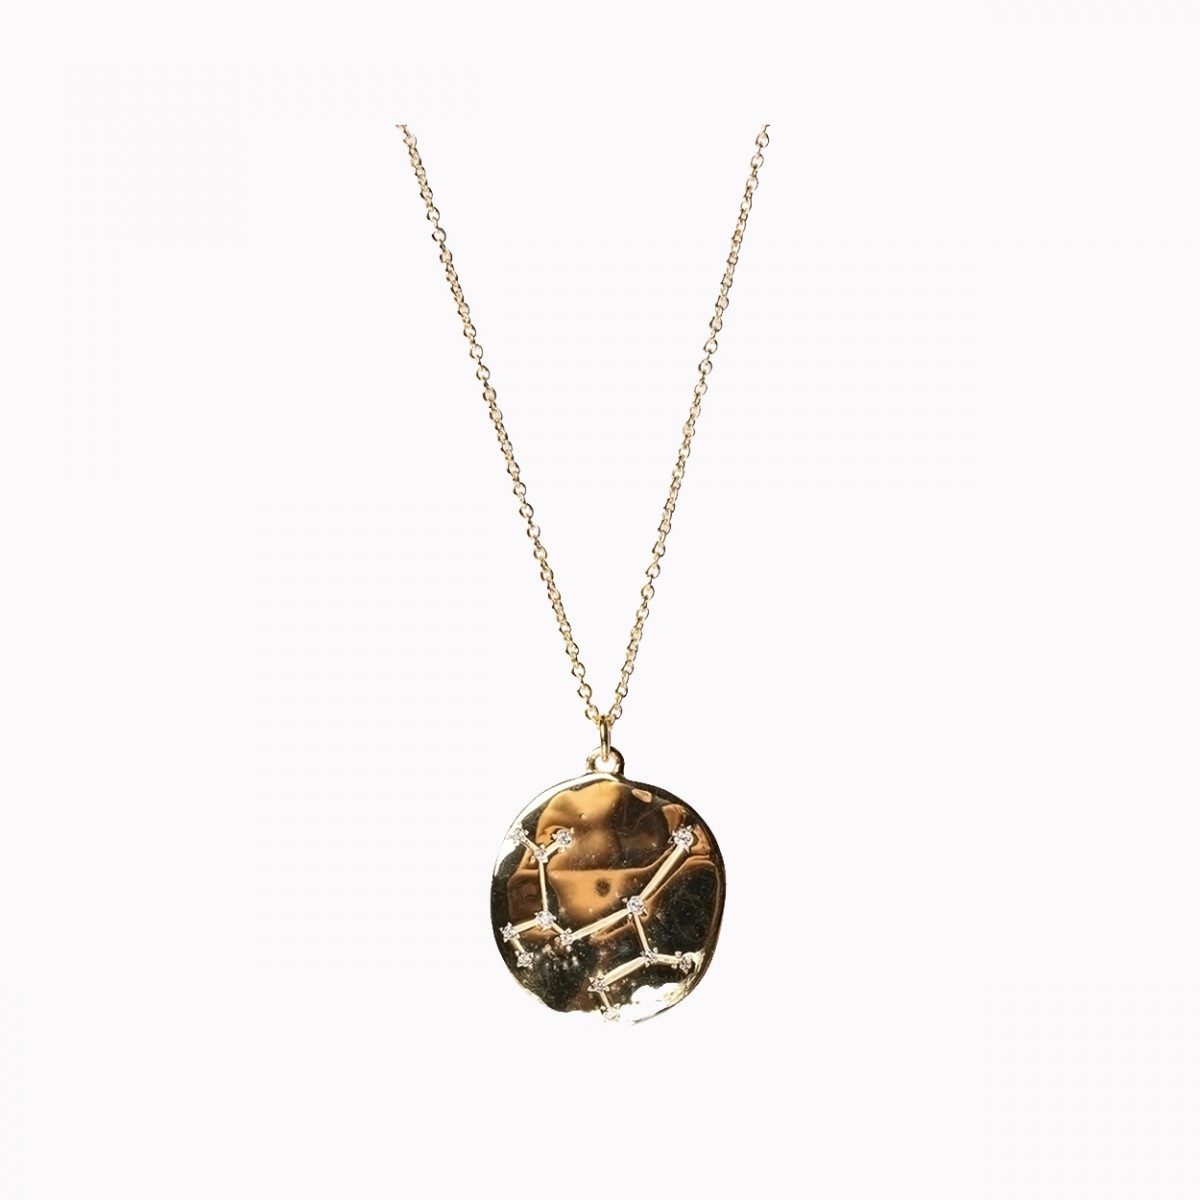 White Zircon Cut Gold Plated Pendant Necklace